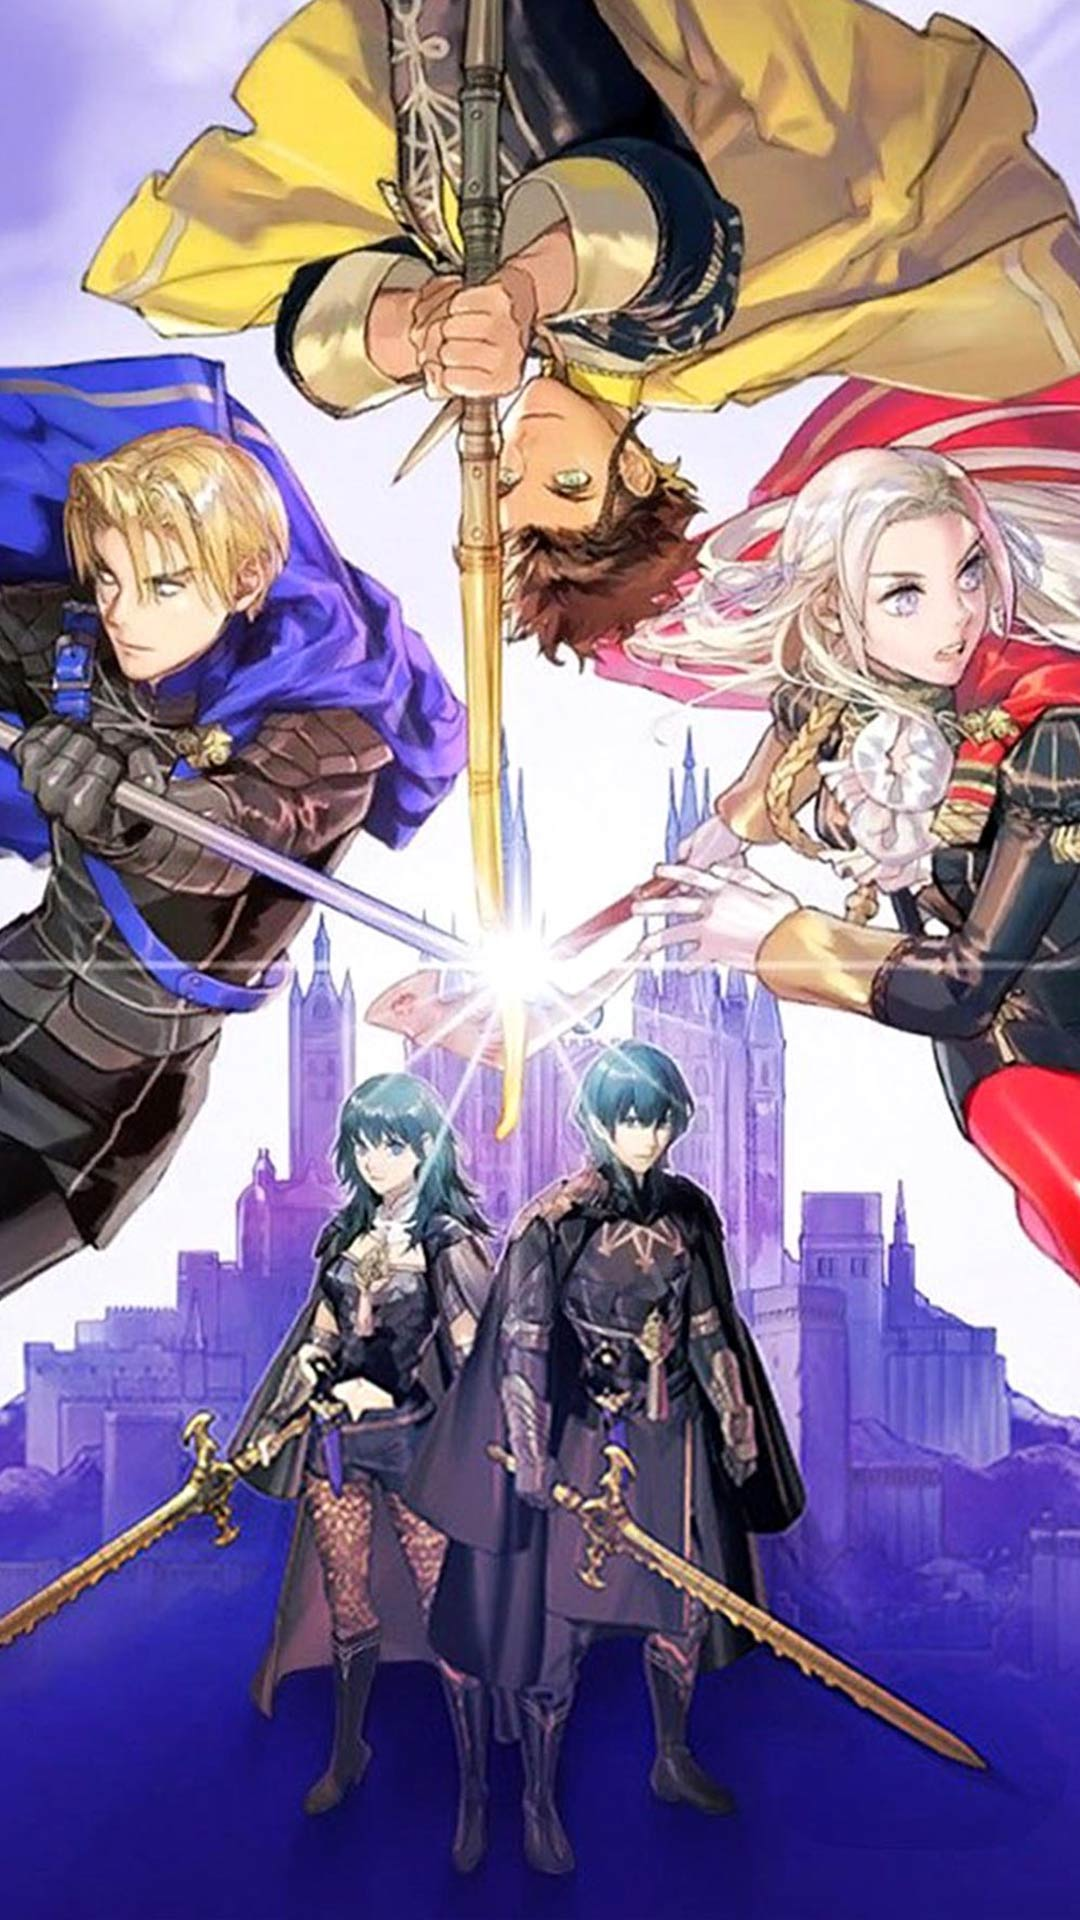 Fire Emblem: Three Houses Wallpapers - Top Free Fire ...